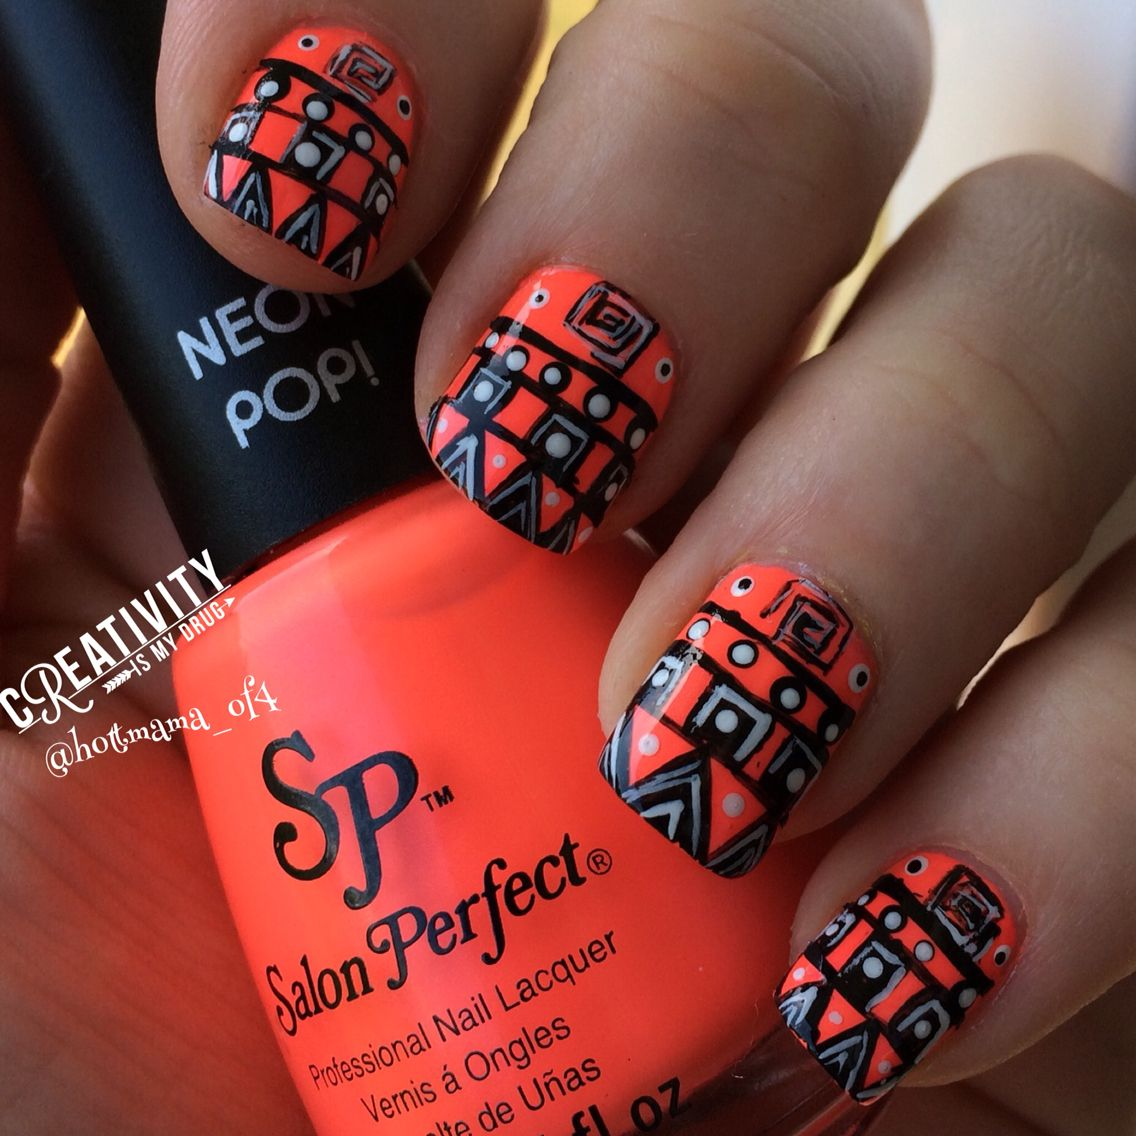 Salon Perfect Cirque Facets Collection Halloween 2020 Copacabana Girl Salon Perfect with acrylic paint for the tribal